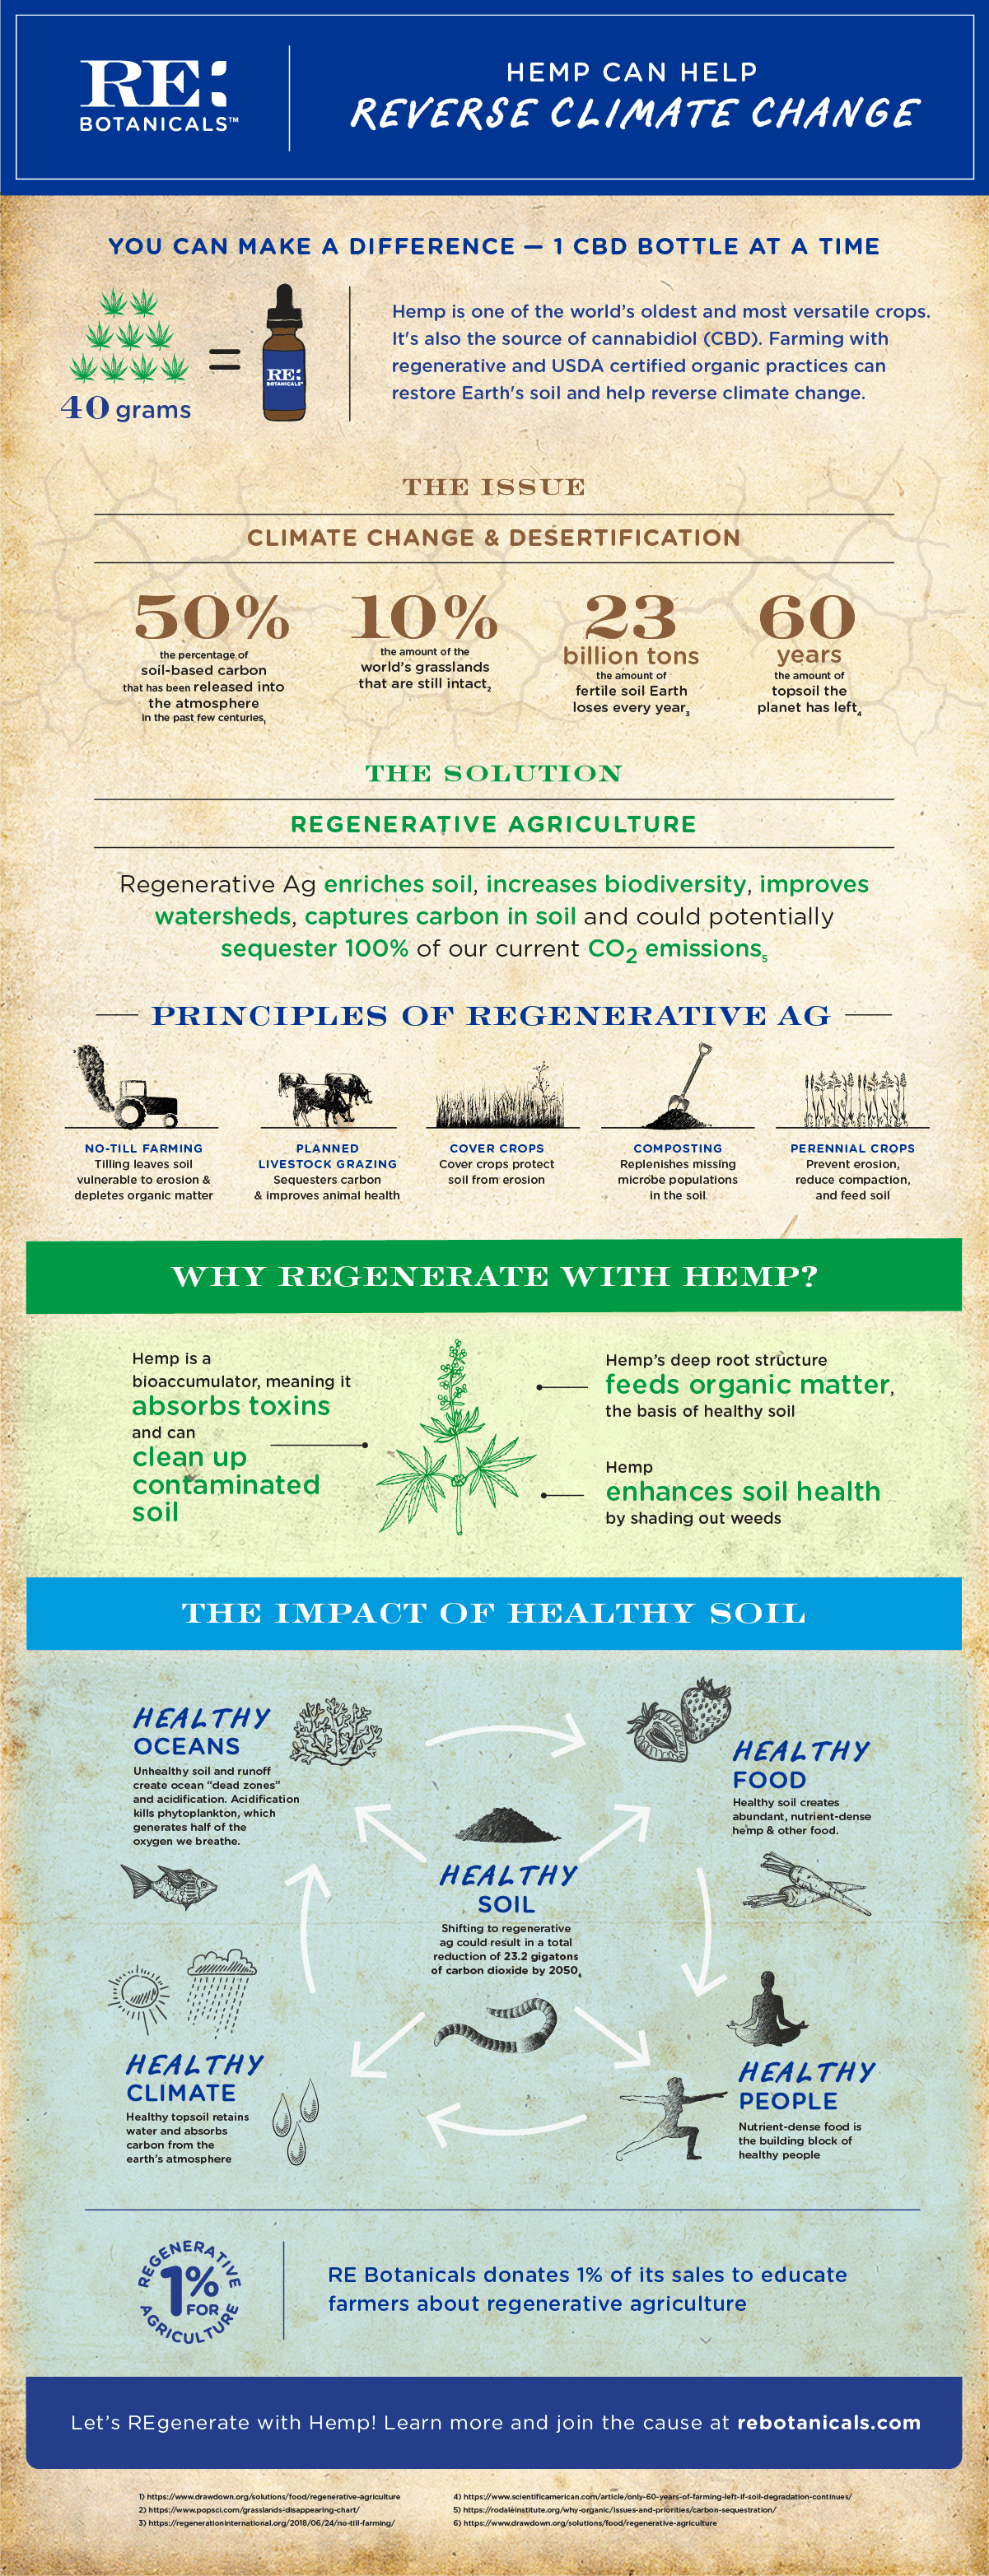 Hemp Can Help Reverse Climate Change Infographic